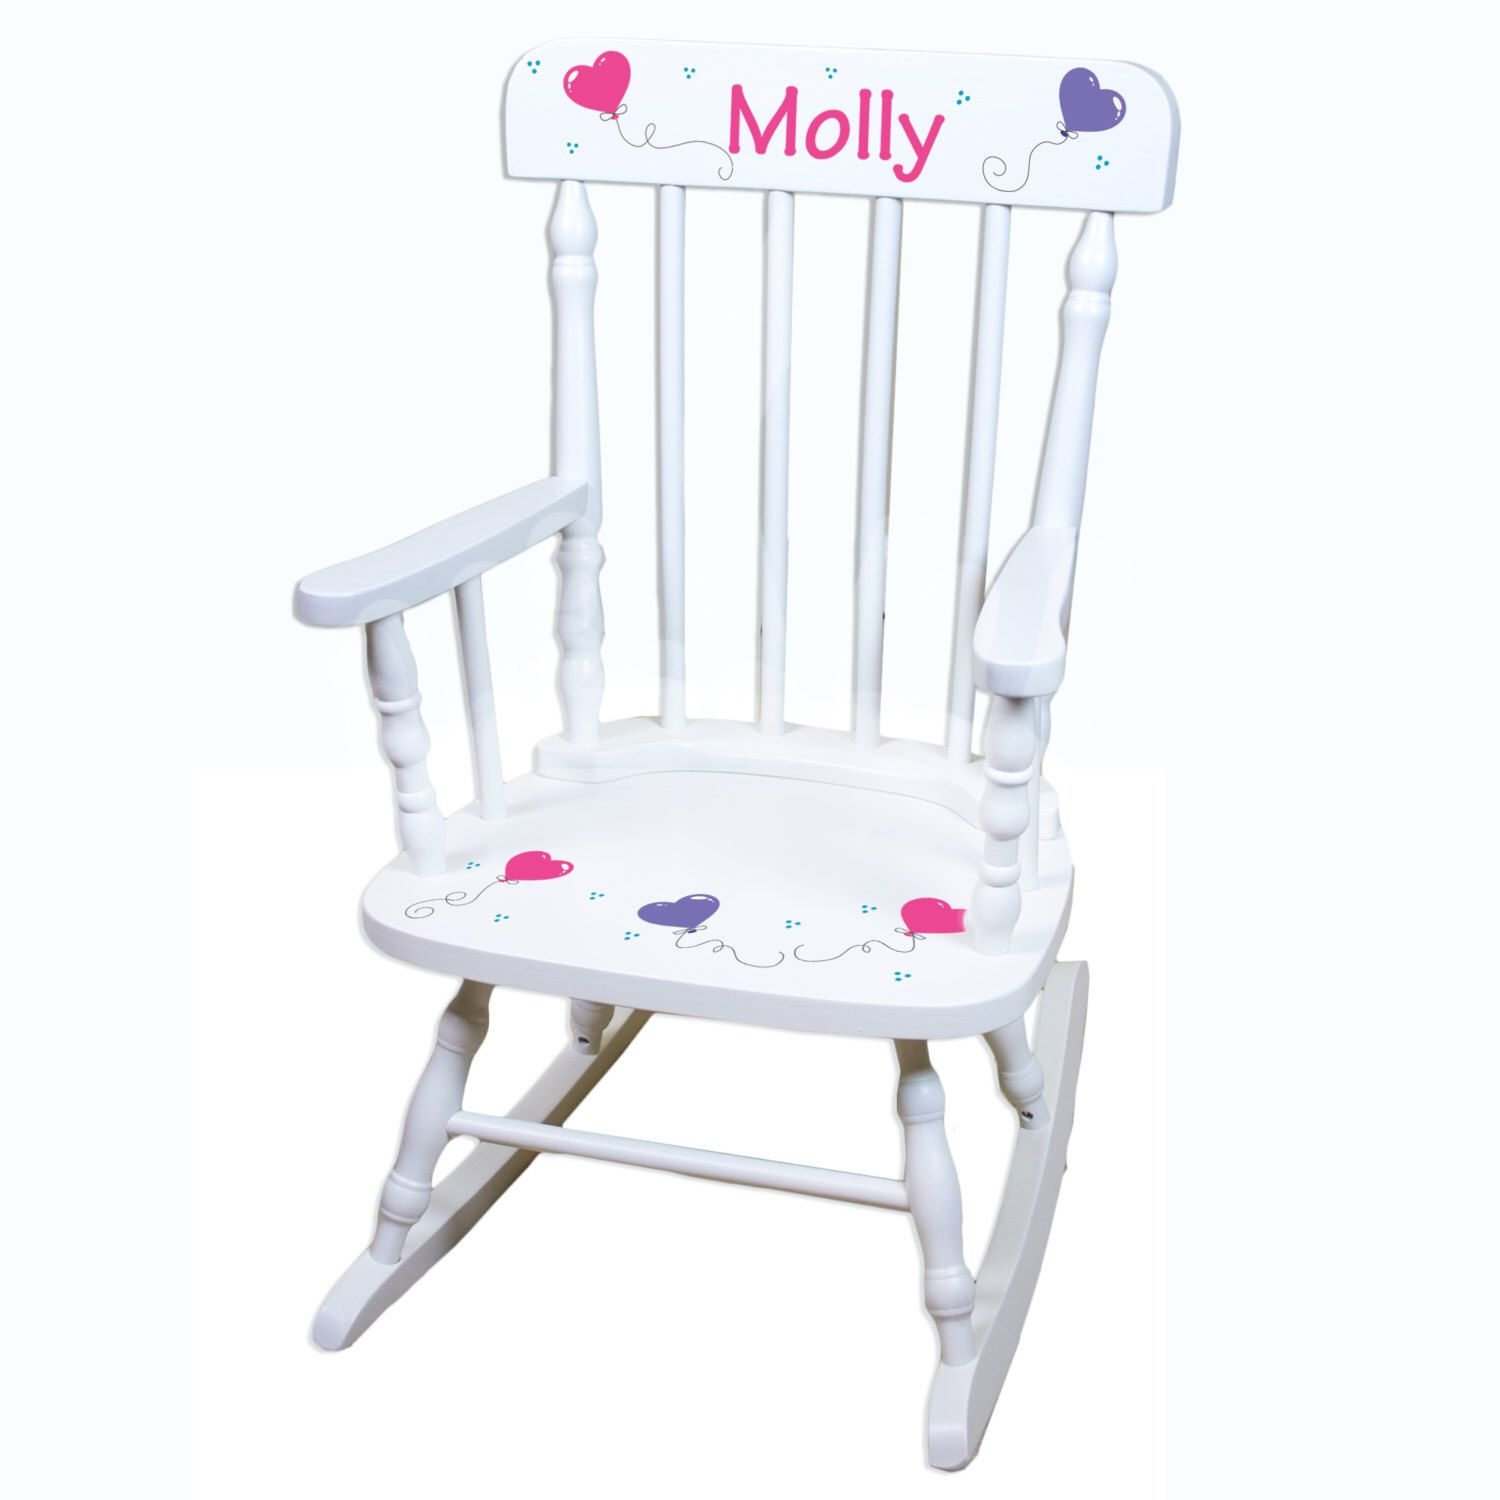 pink nursery rocking chair west elm outdoor cushions hand painted personalized girls white spindle